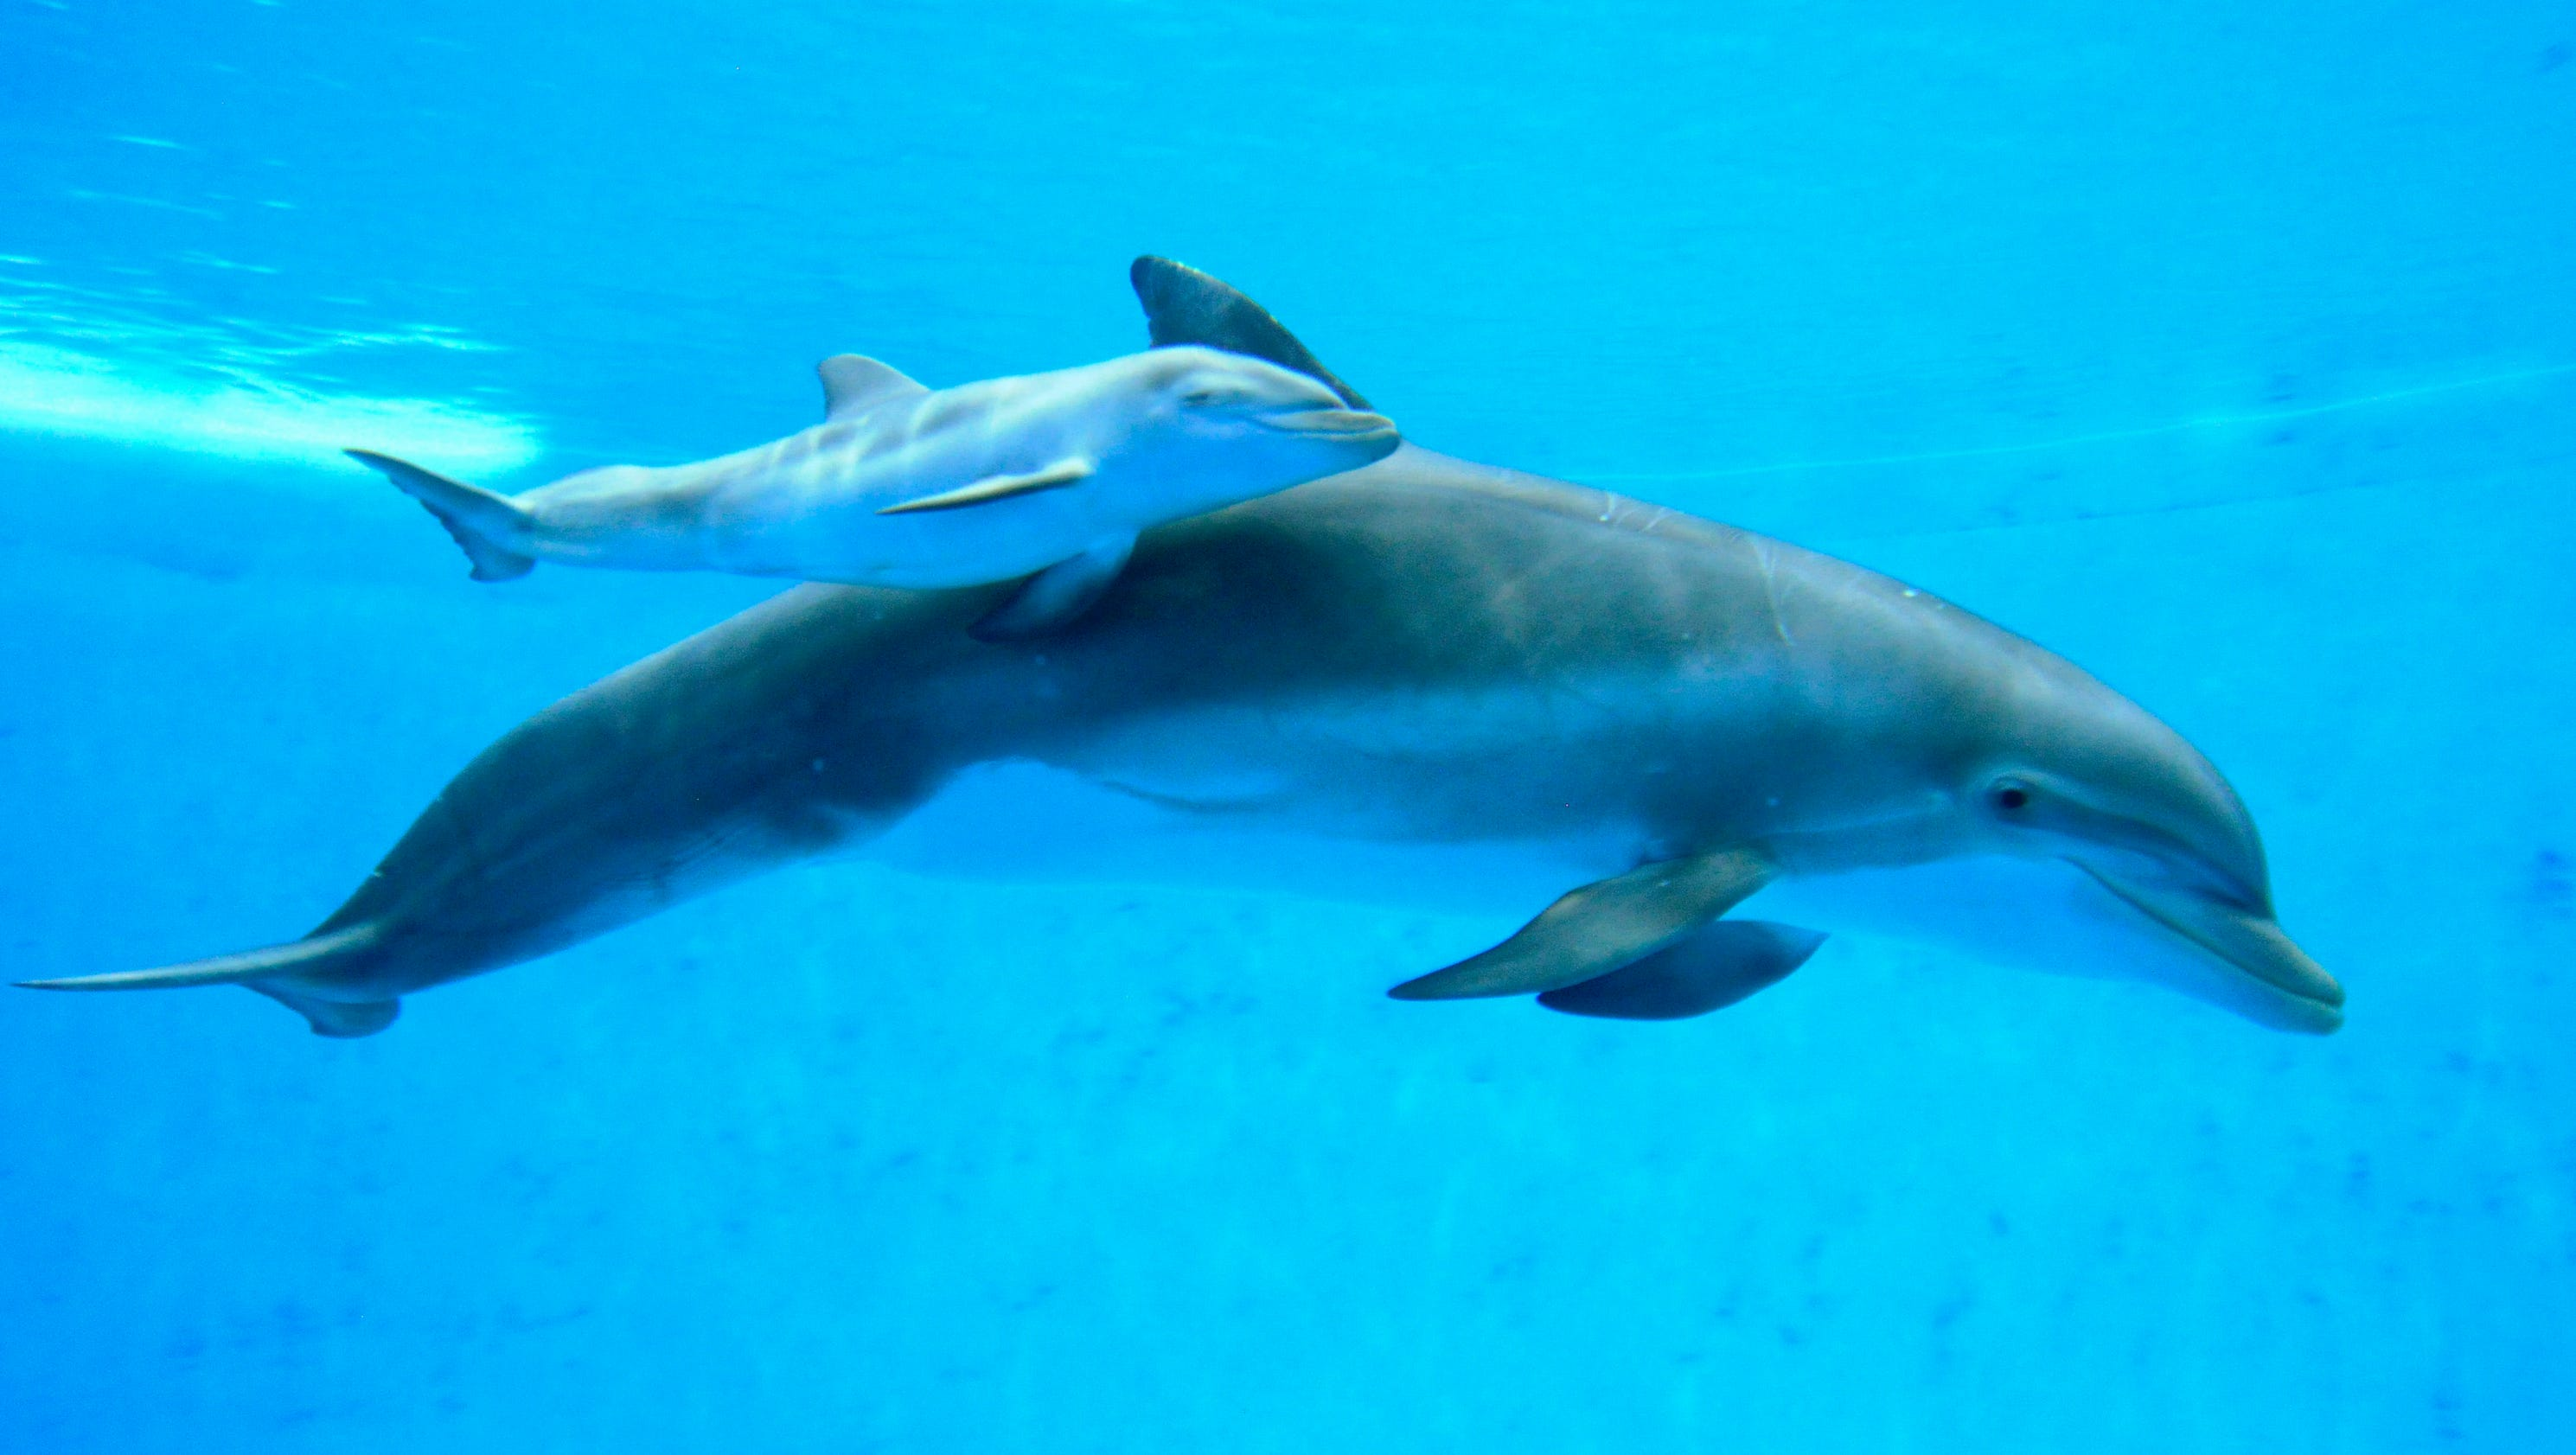 dolphins in the desert 5 big questions about new arizona attraction